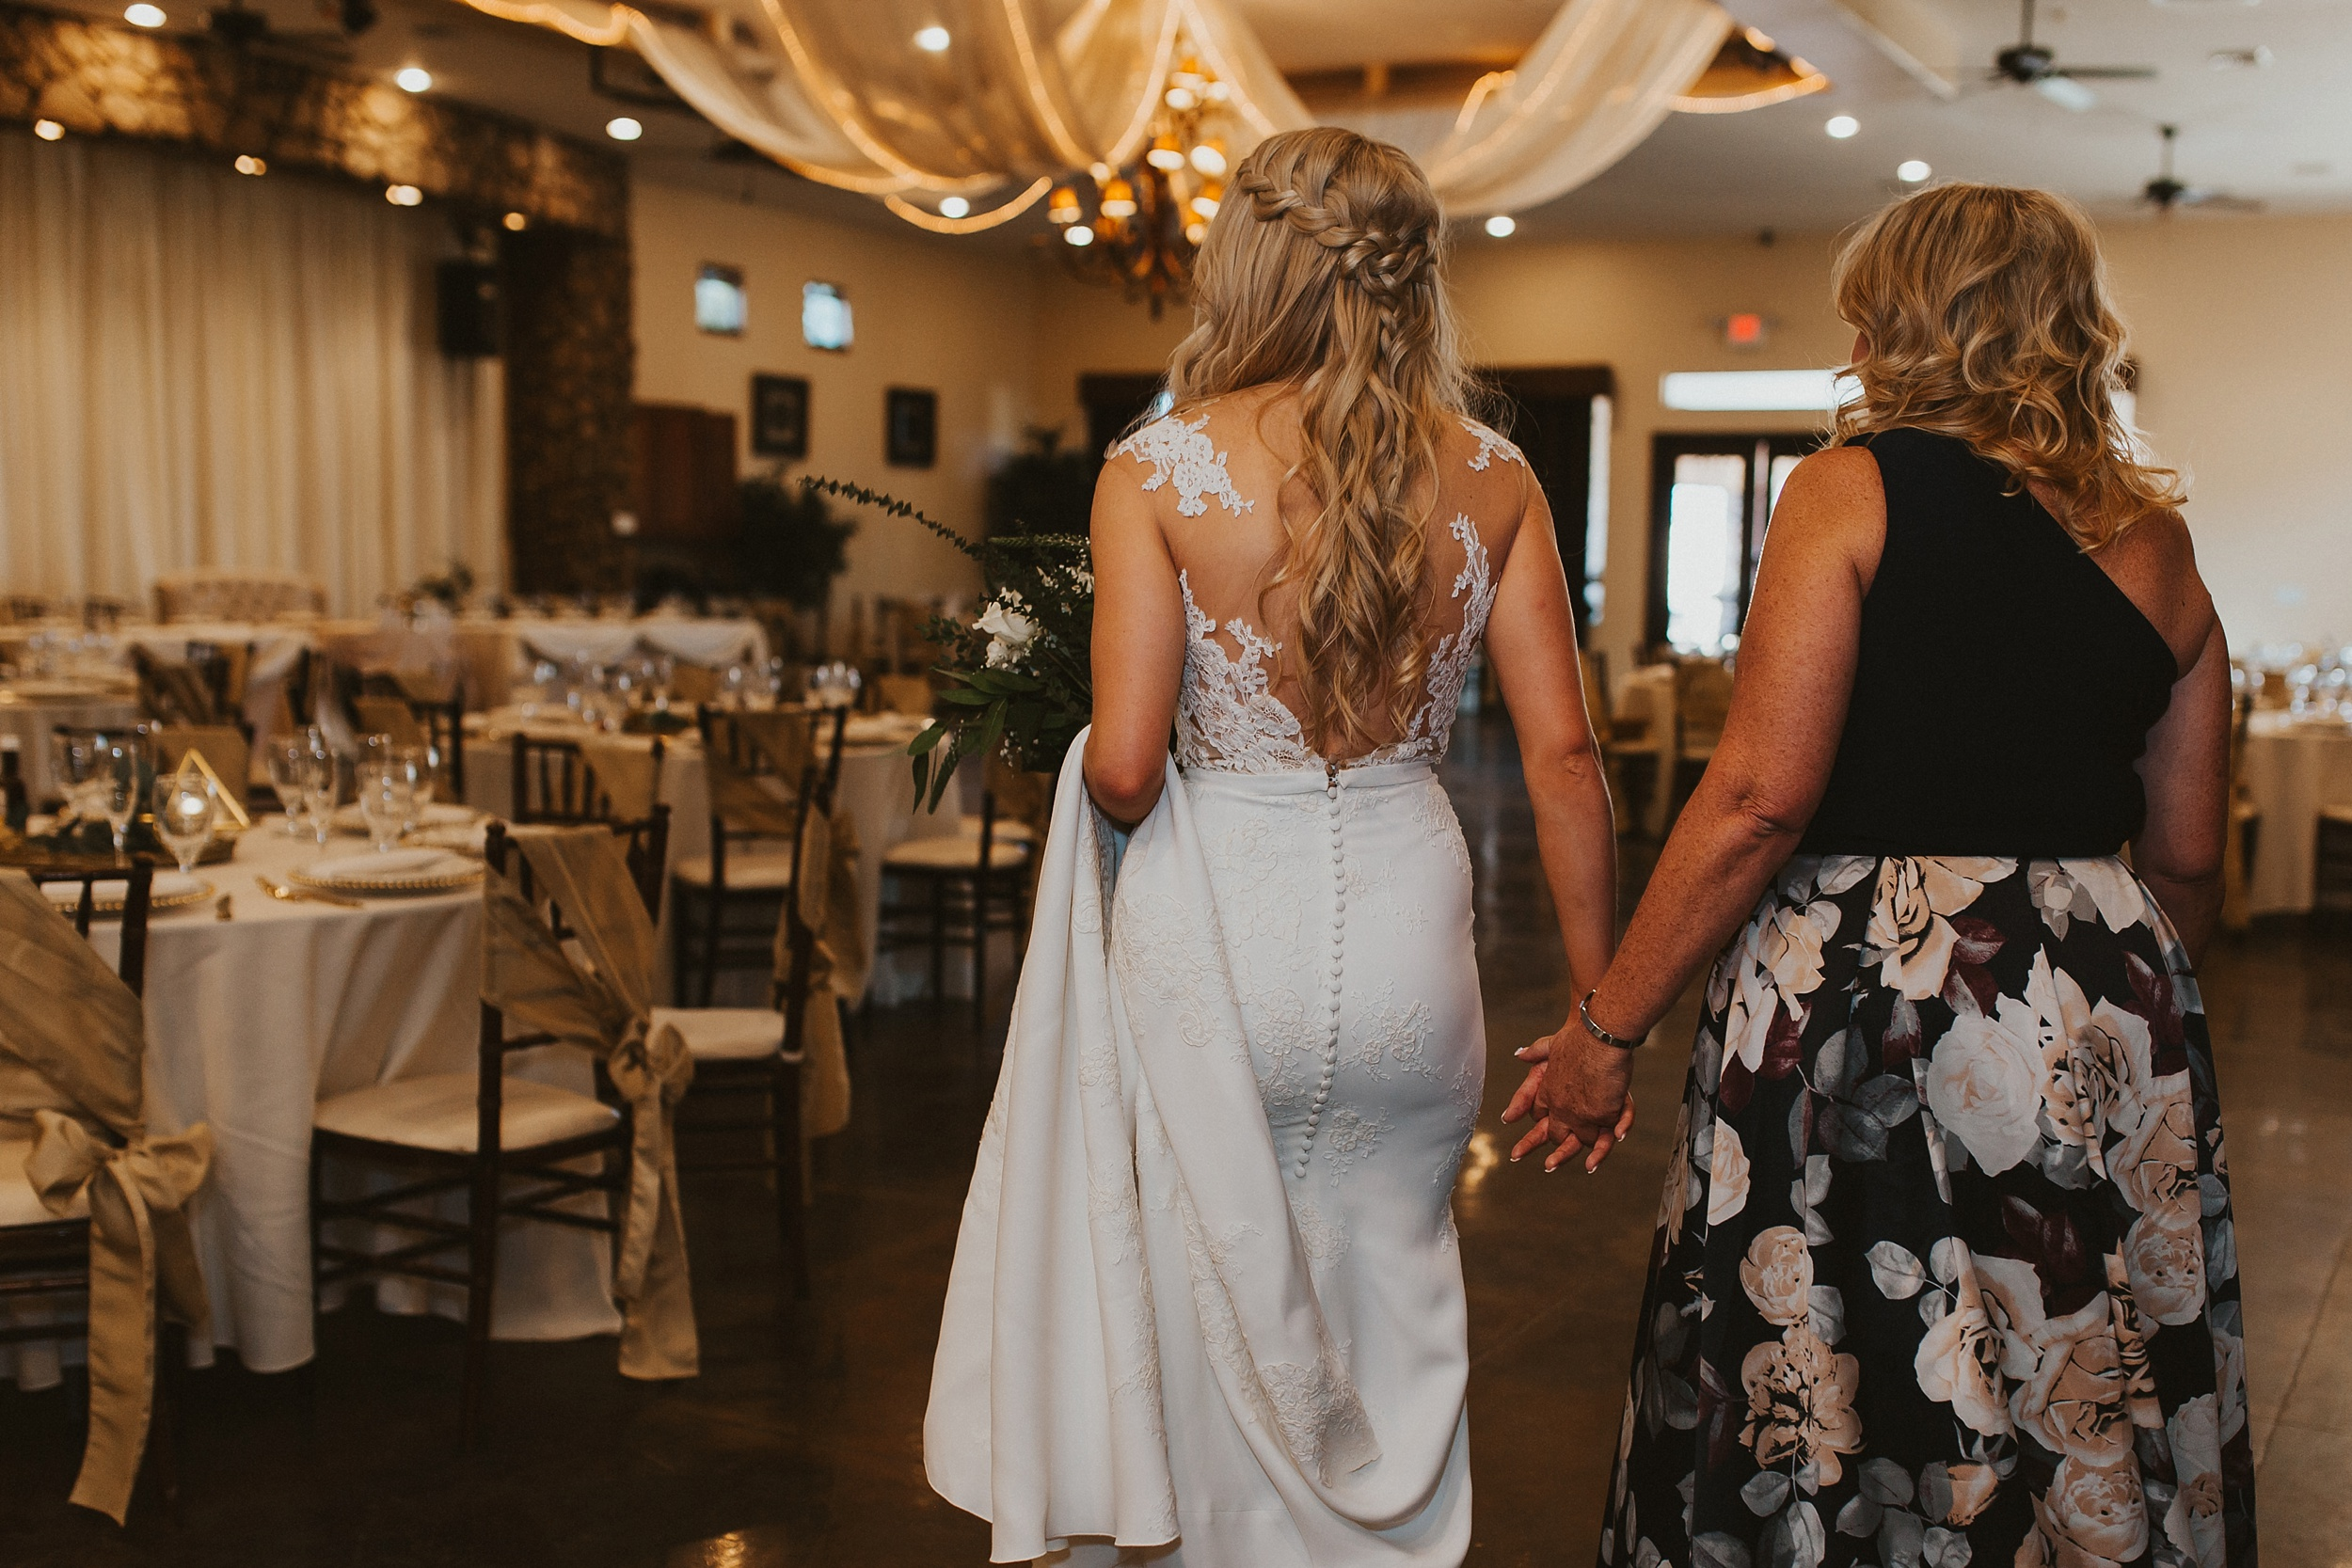 Meg+Bubba_Wedding_GettingReady_Arizona-464.jpg